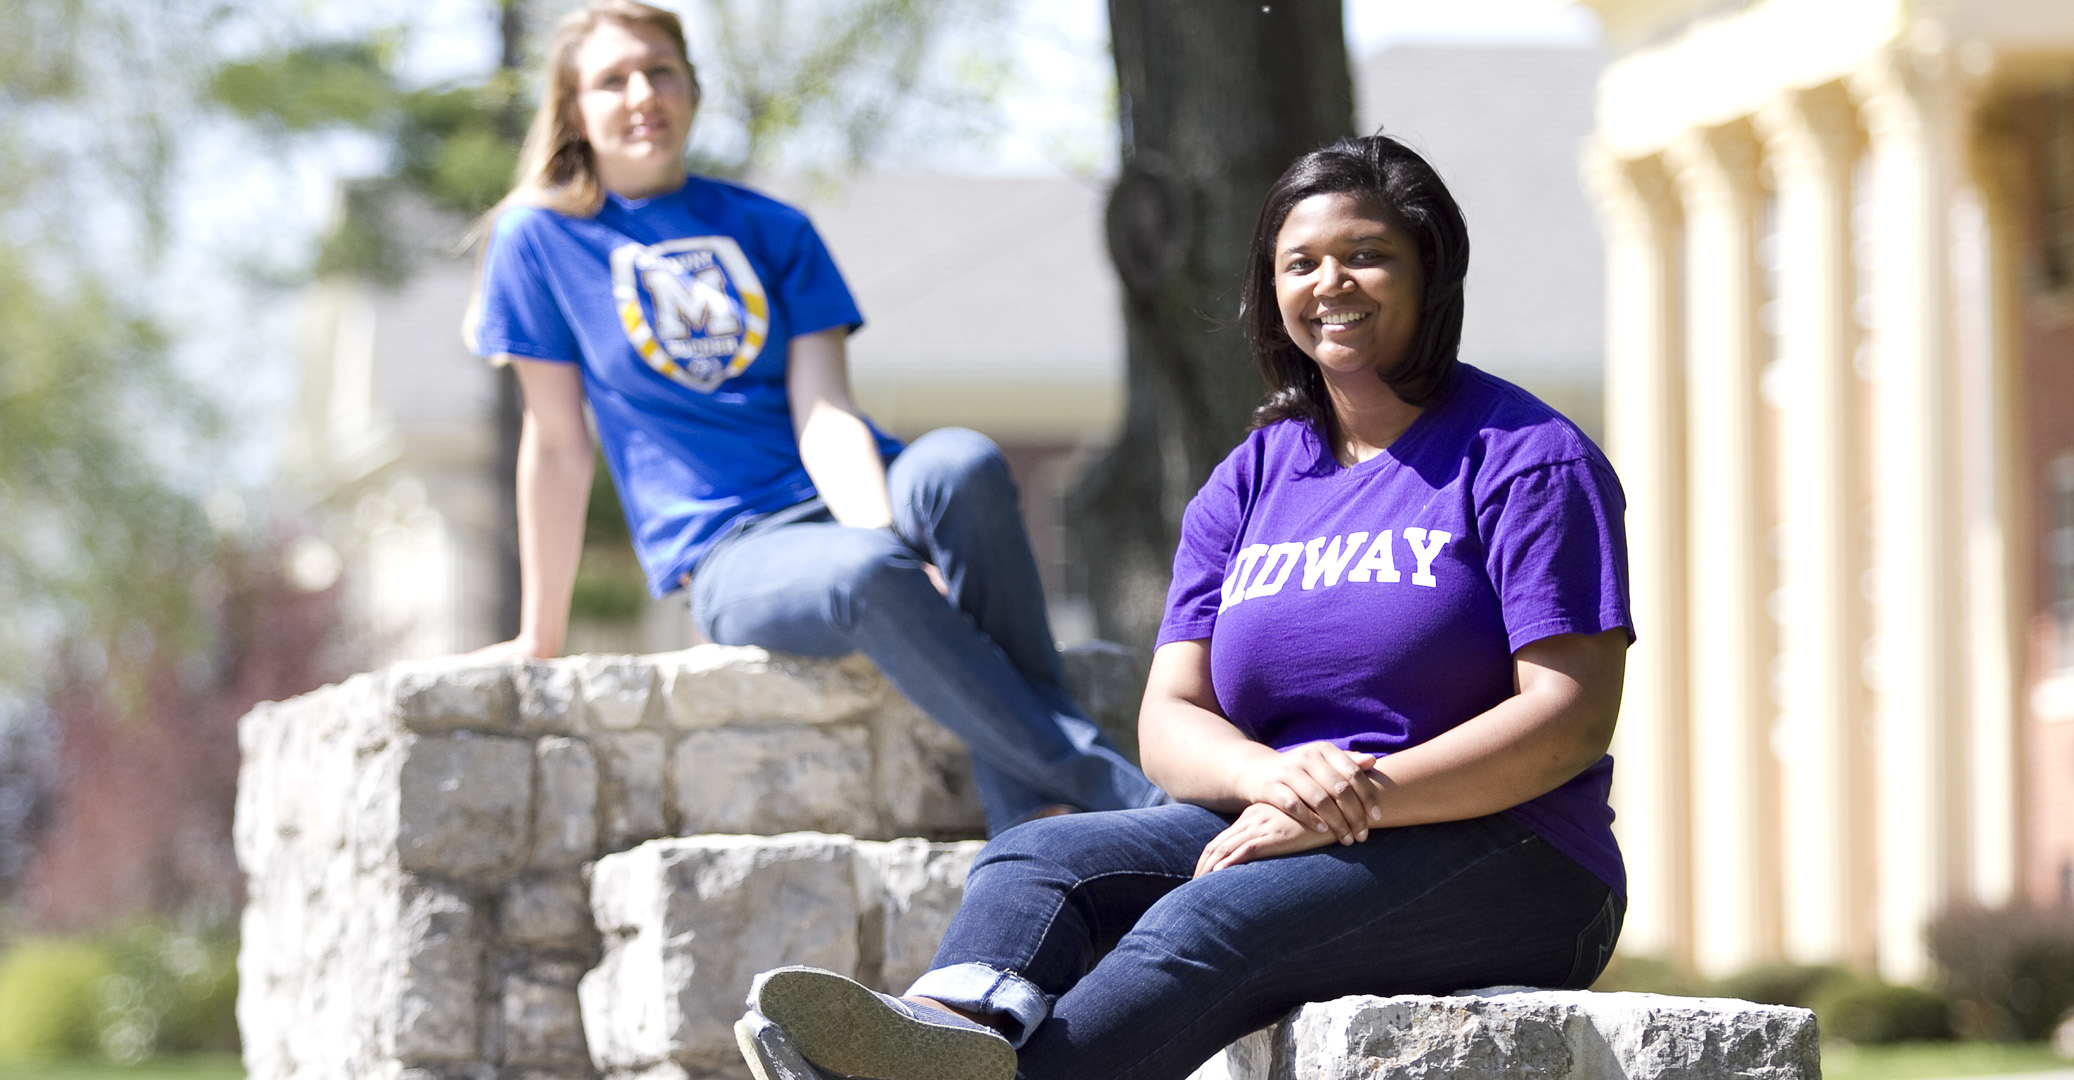 interdisciplinary studies midway university